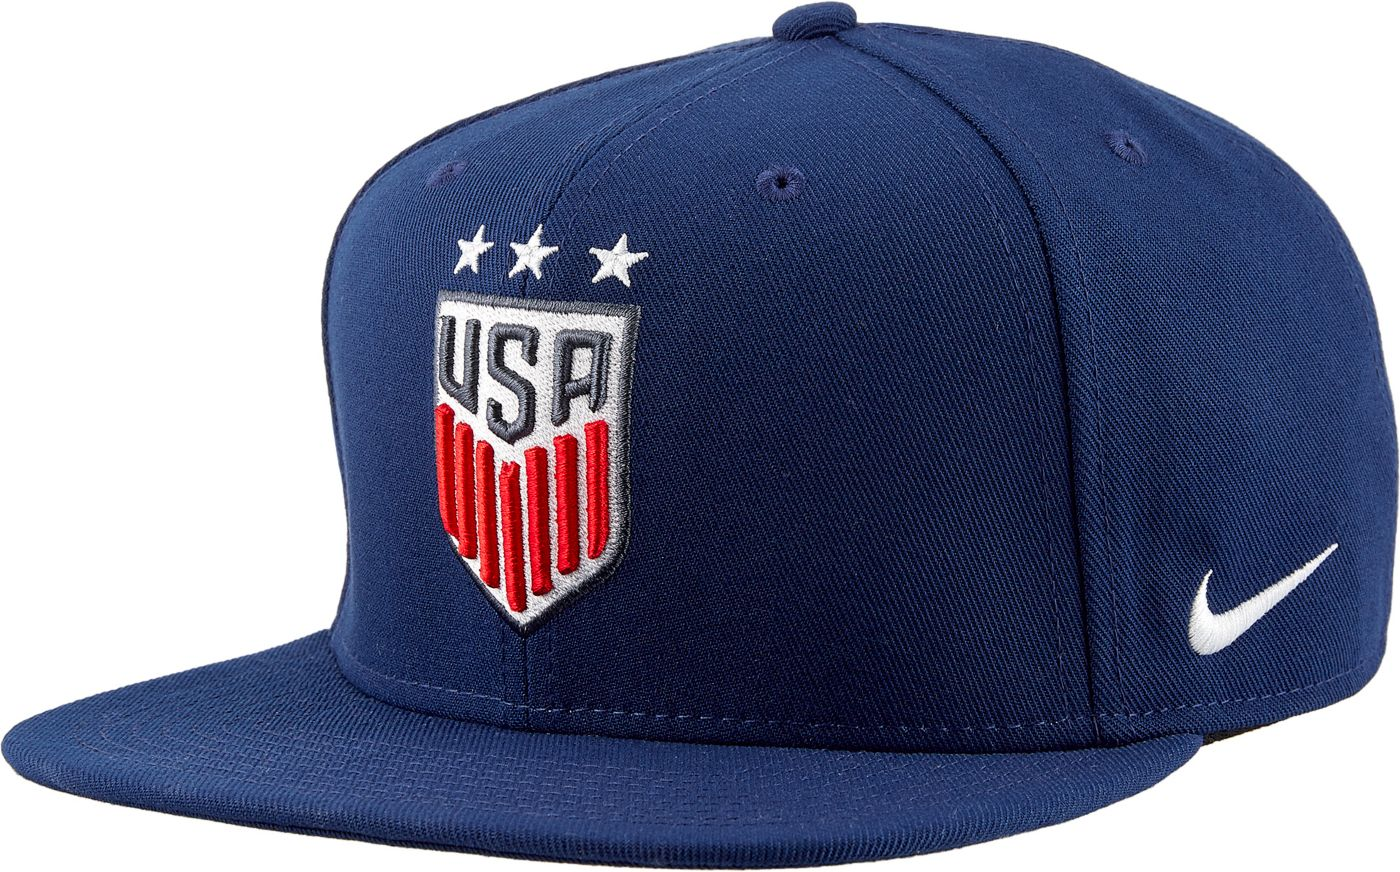 Nike Men's 2019 FIFA Women's World Cup USA Soccer Flat Brim Adjustable Snapback Hat